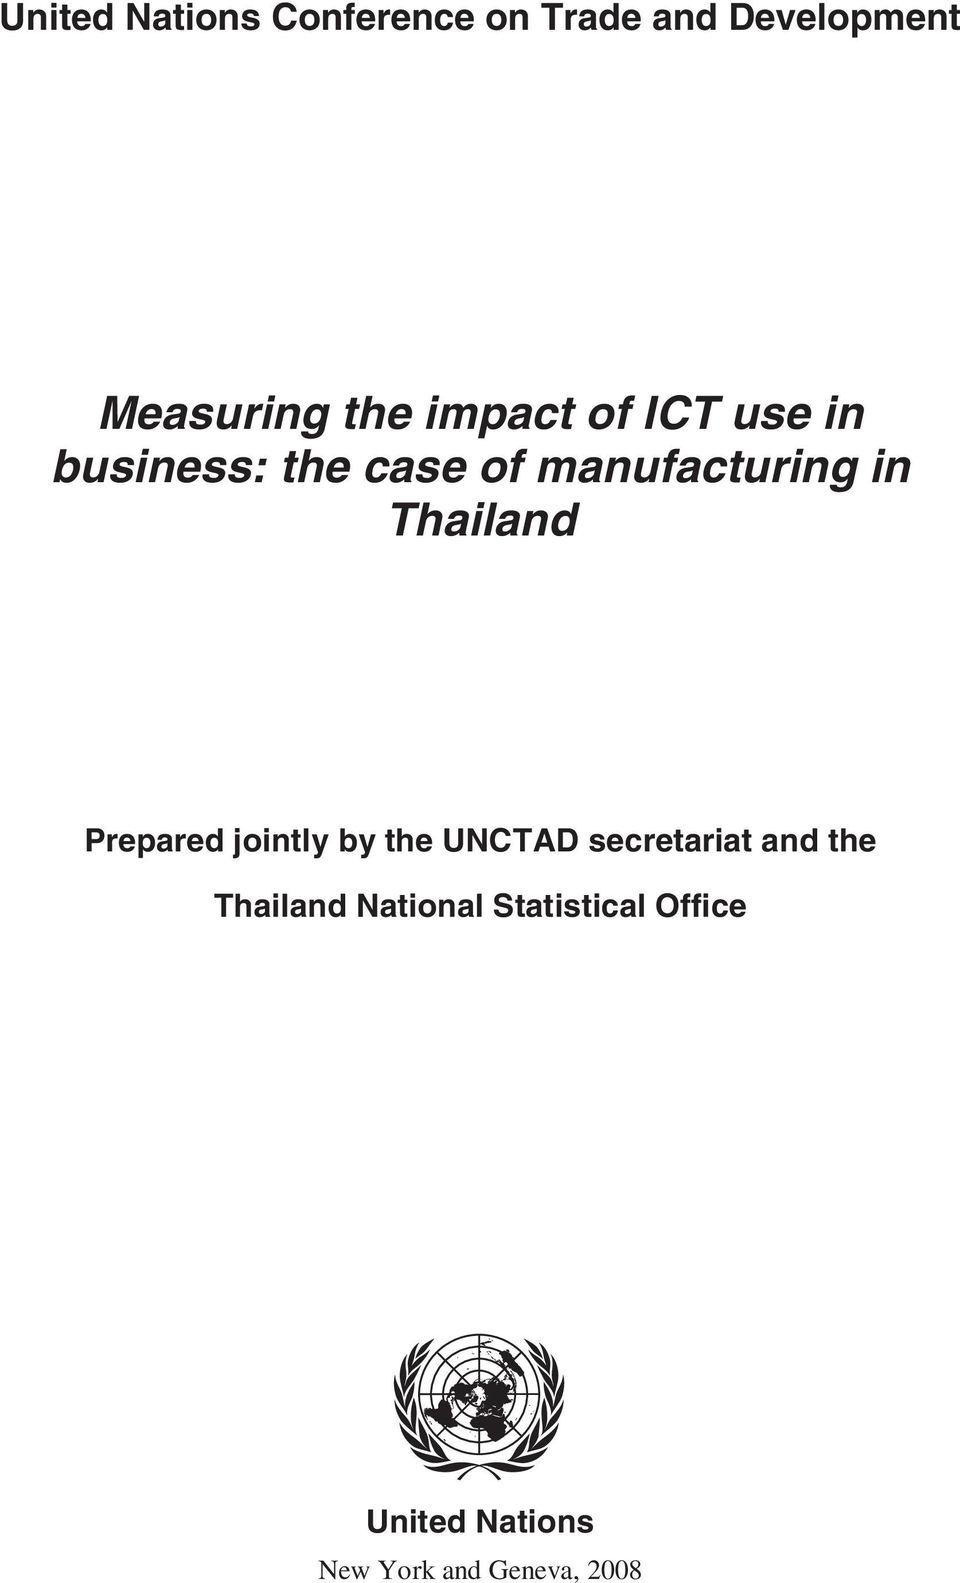 Thailand Prepared jointly by the UNCTAD secretariat and the